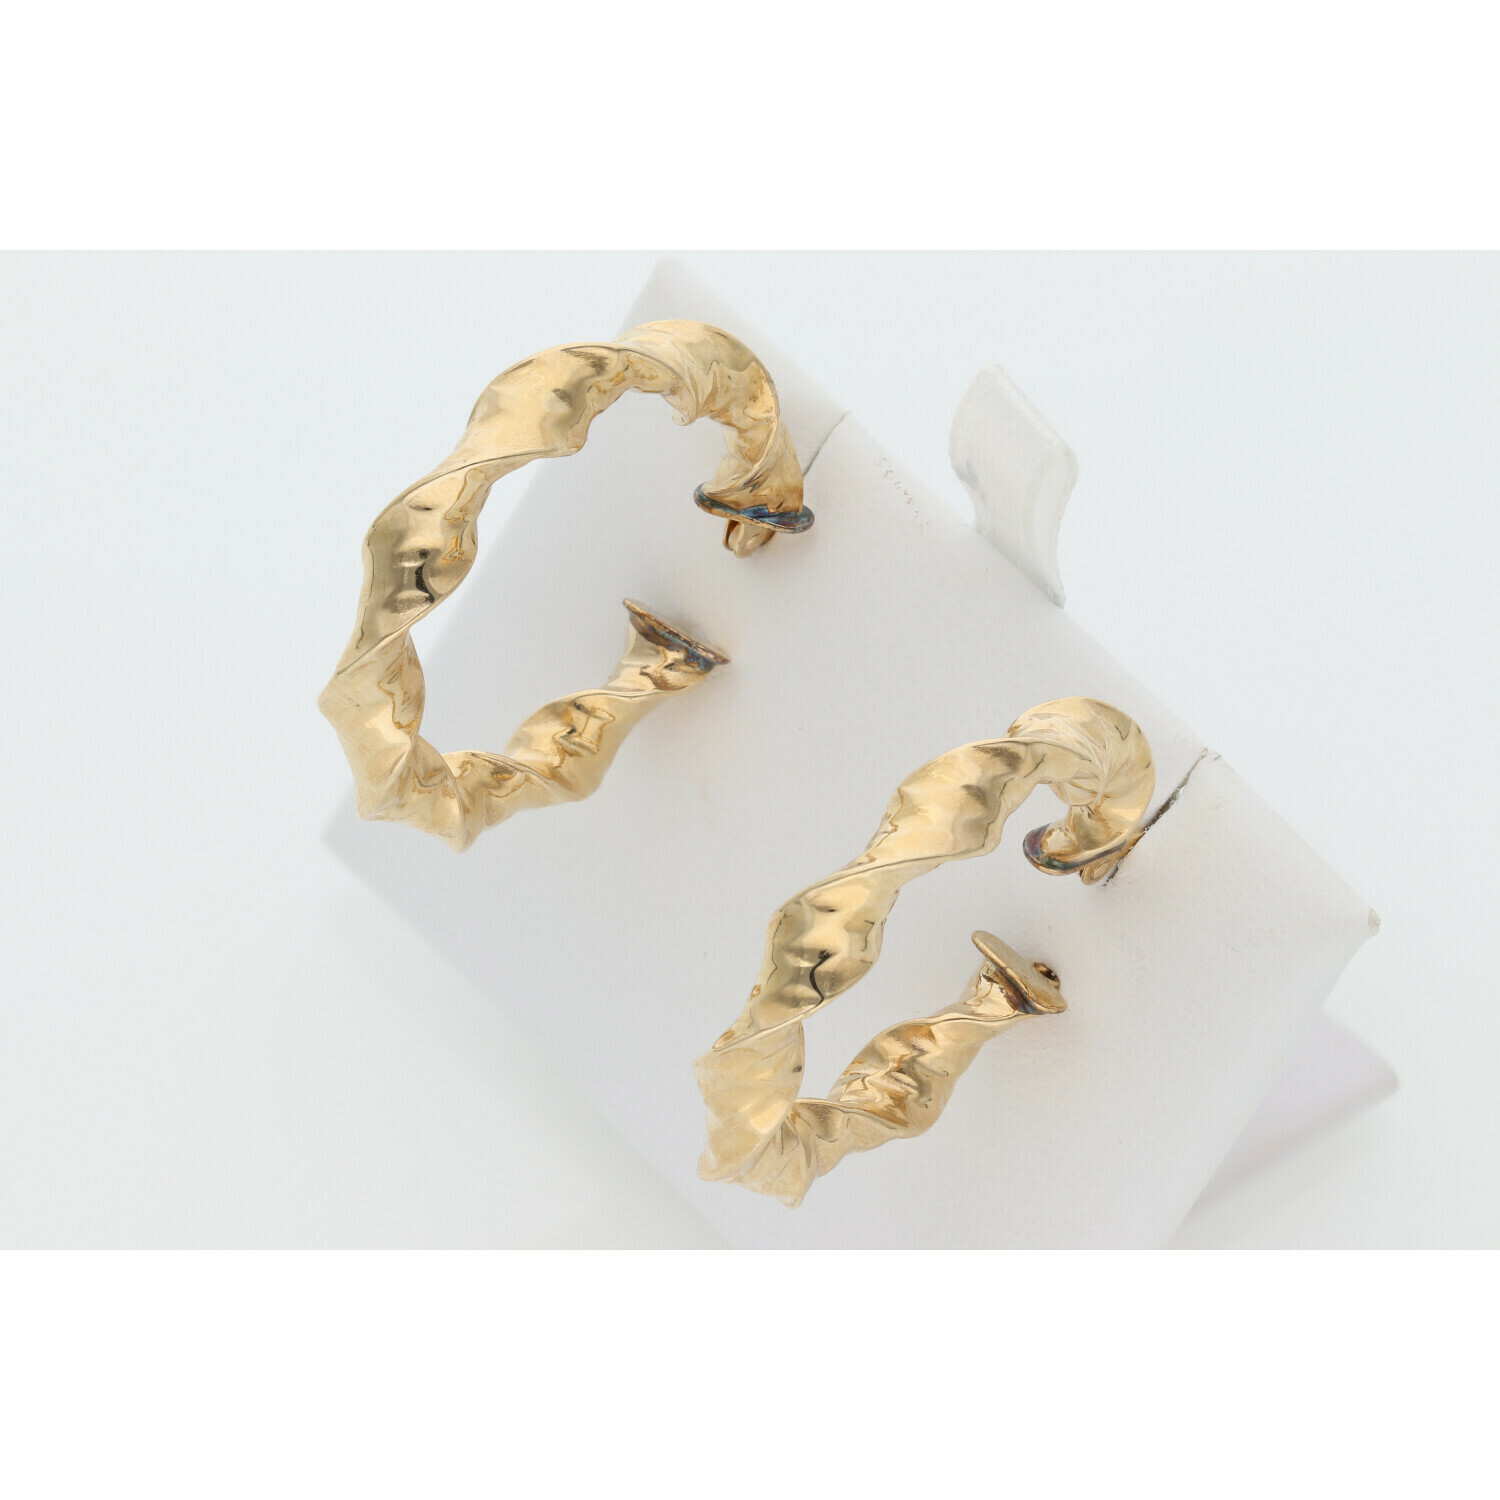 14 Karat Gold Fancy Hoops Earrings W: 3.3 ~